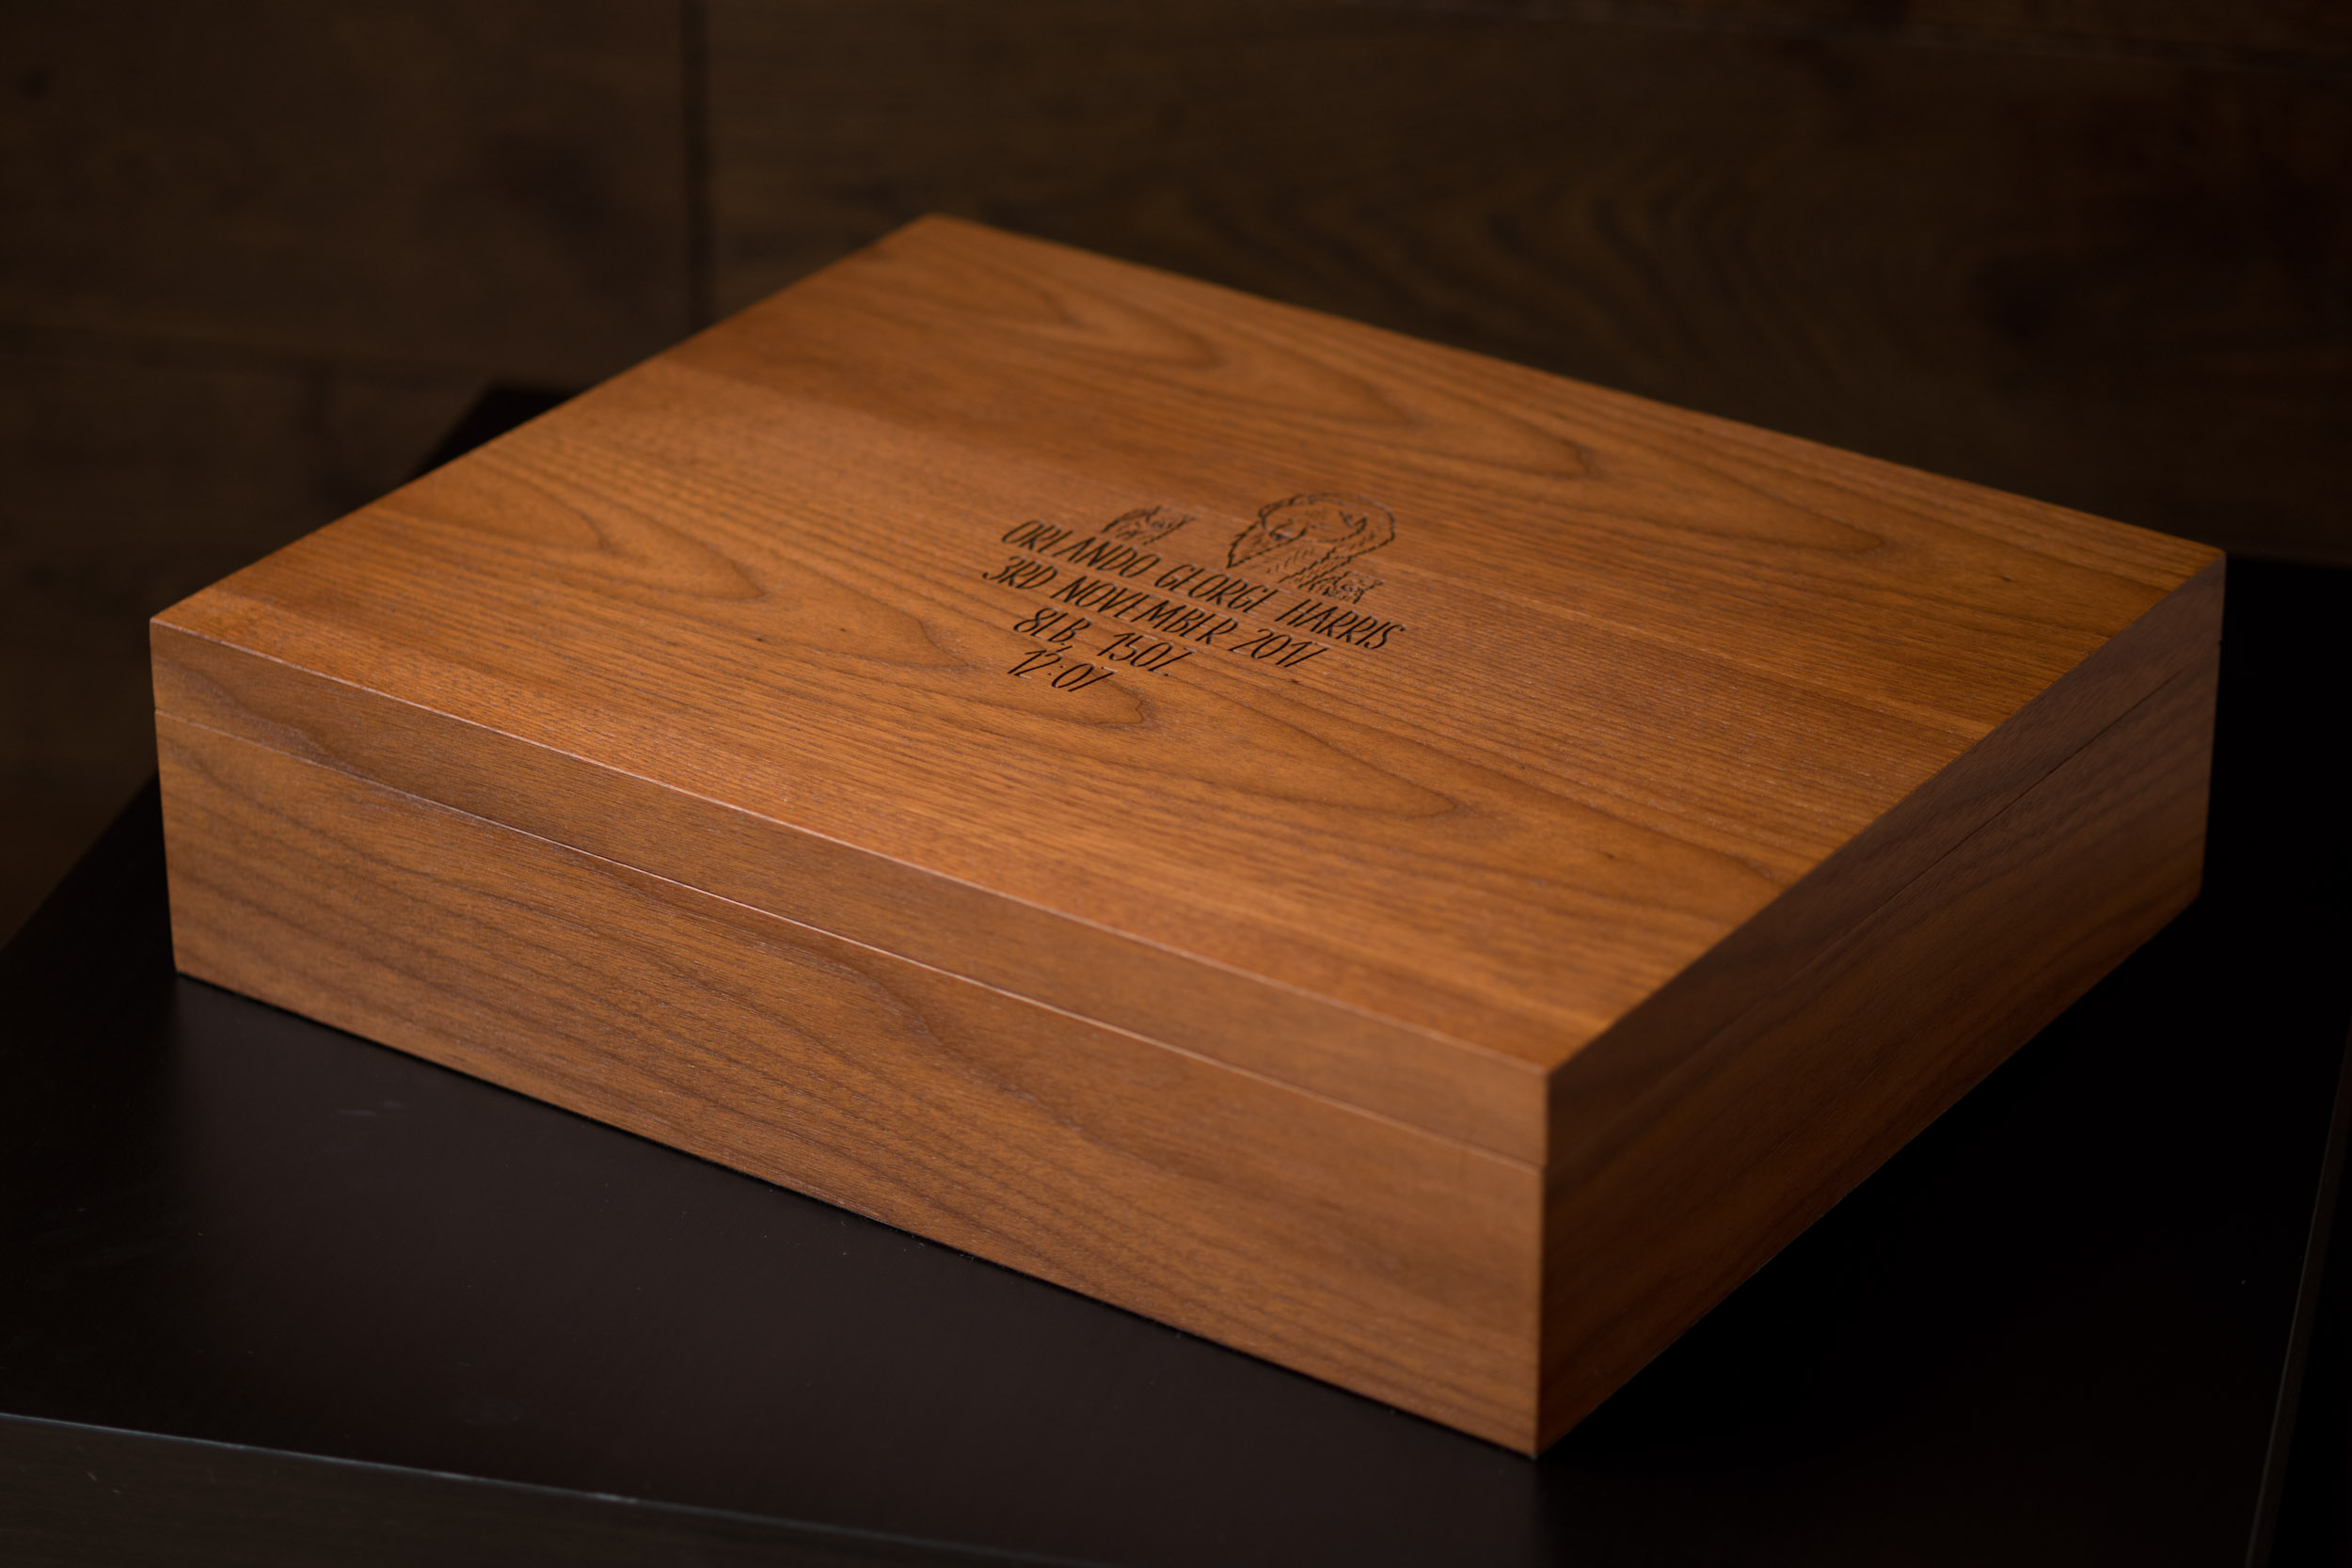 Newborn-Photography-Lincoln-Mounted-images-in-keepsake-hinged-wooden-box-001.jpg